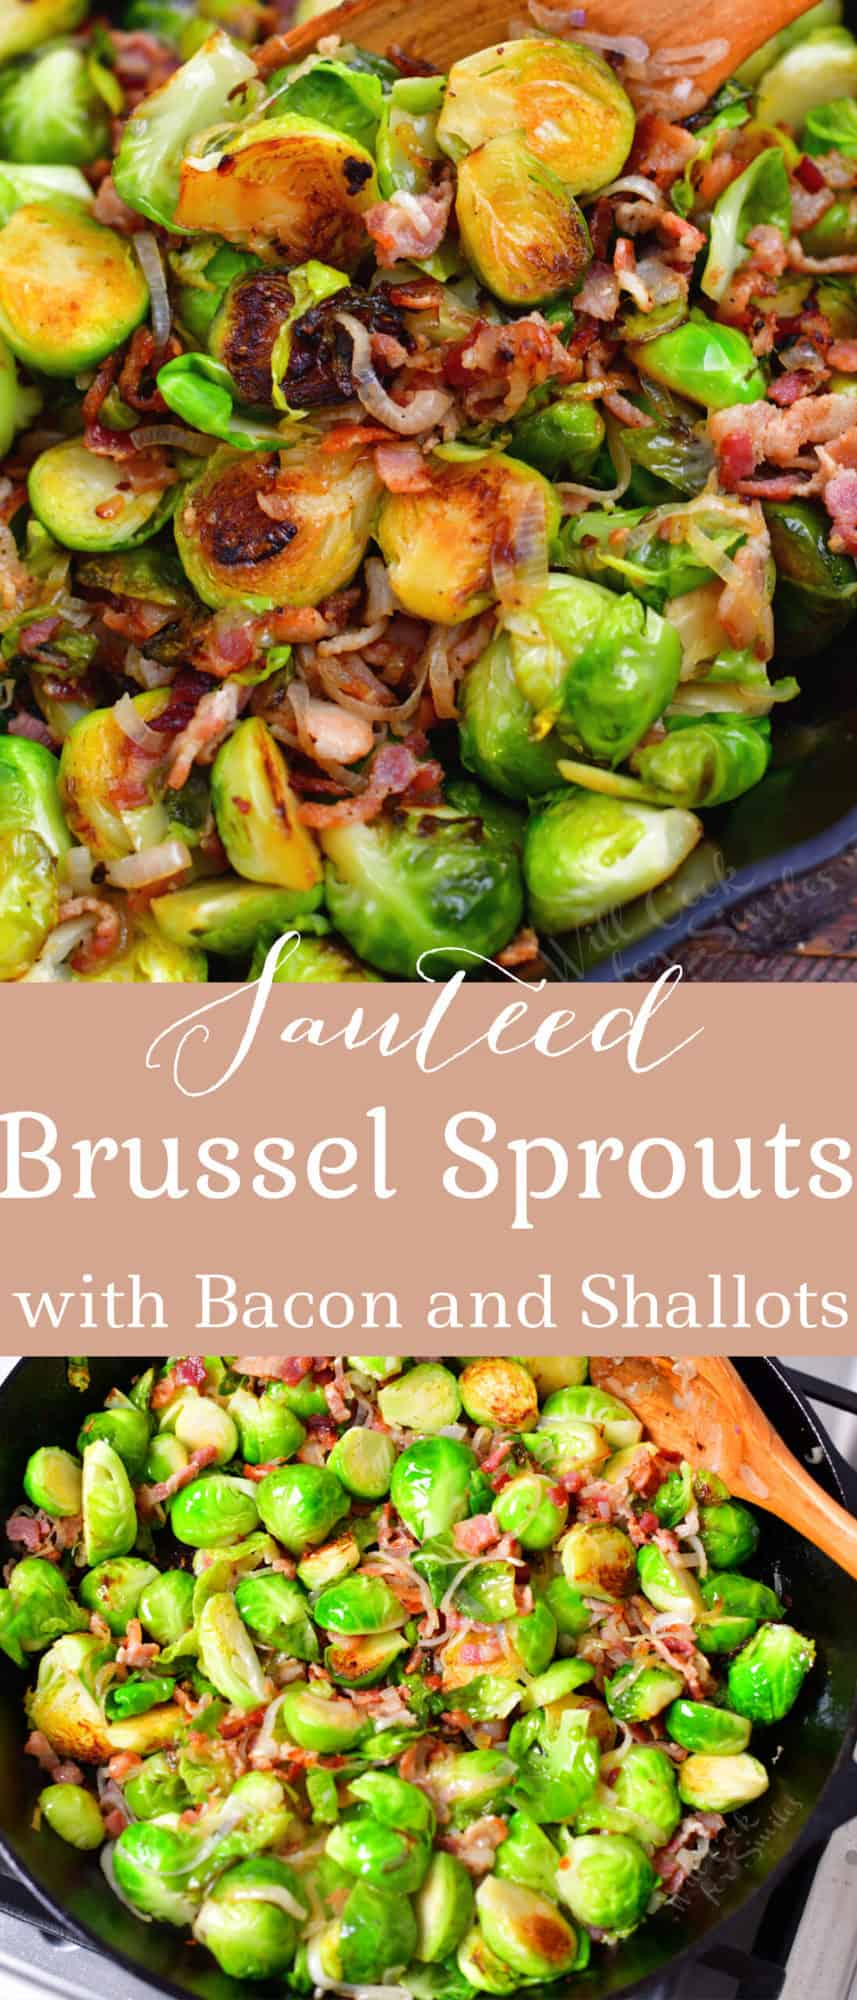 titled photo (and shown): Sauteed Brussel Sprouts with Bacon and Shallots